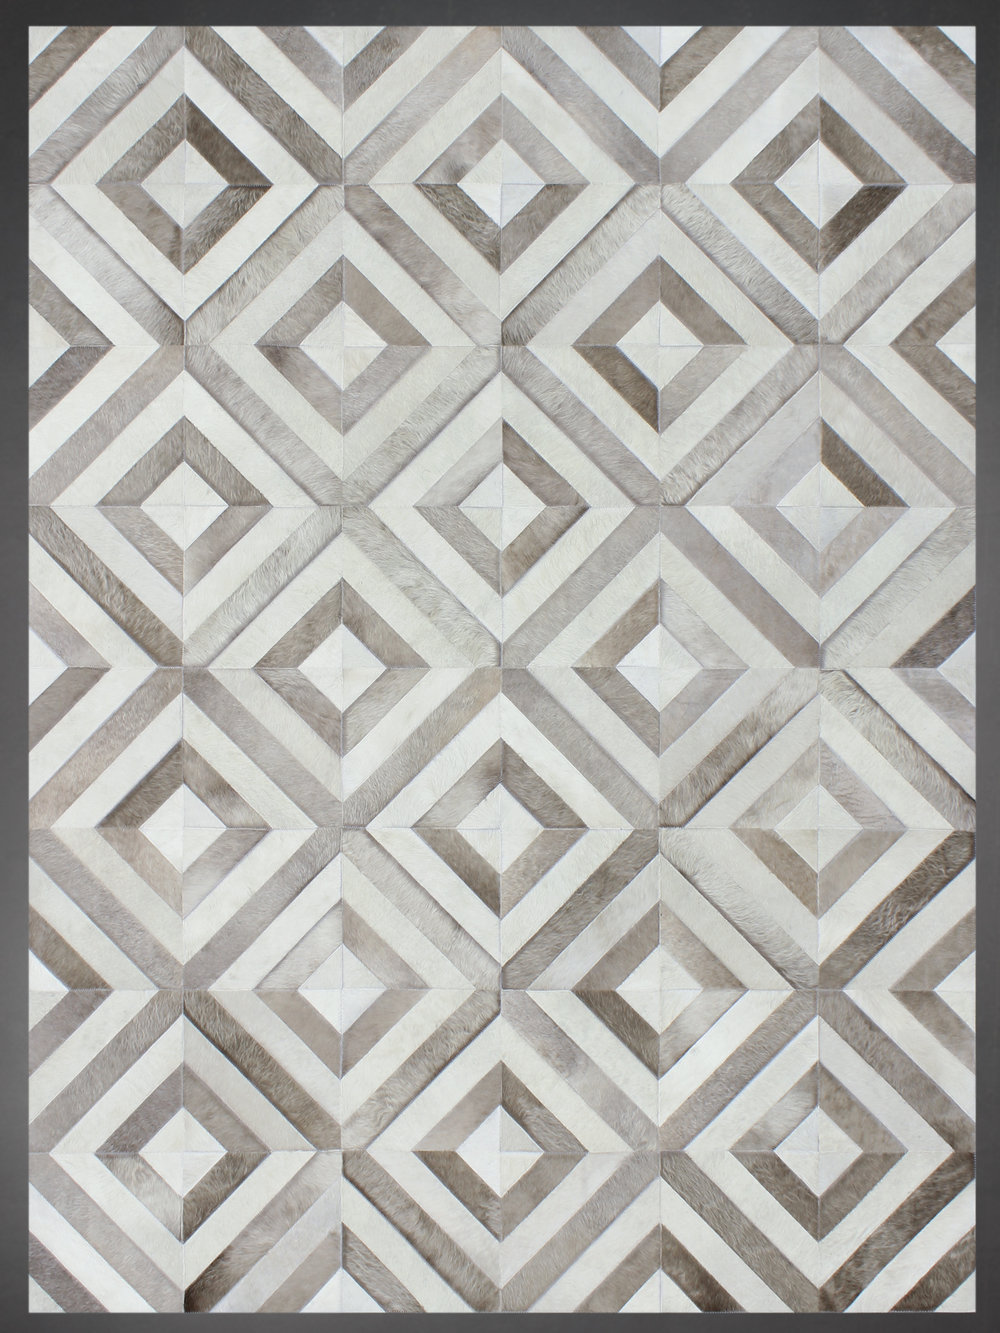 Contemporary designed fur rug in a woven pattern in grays and browns.